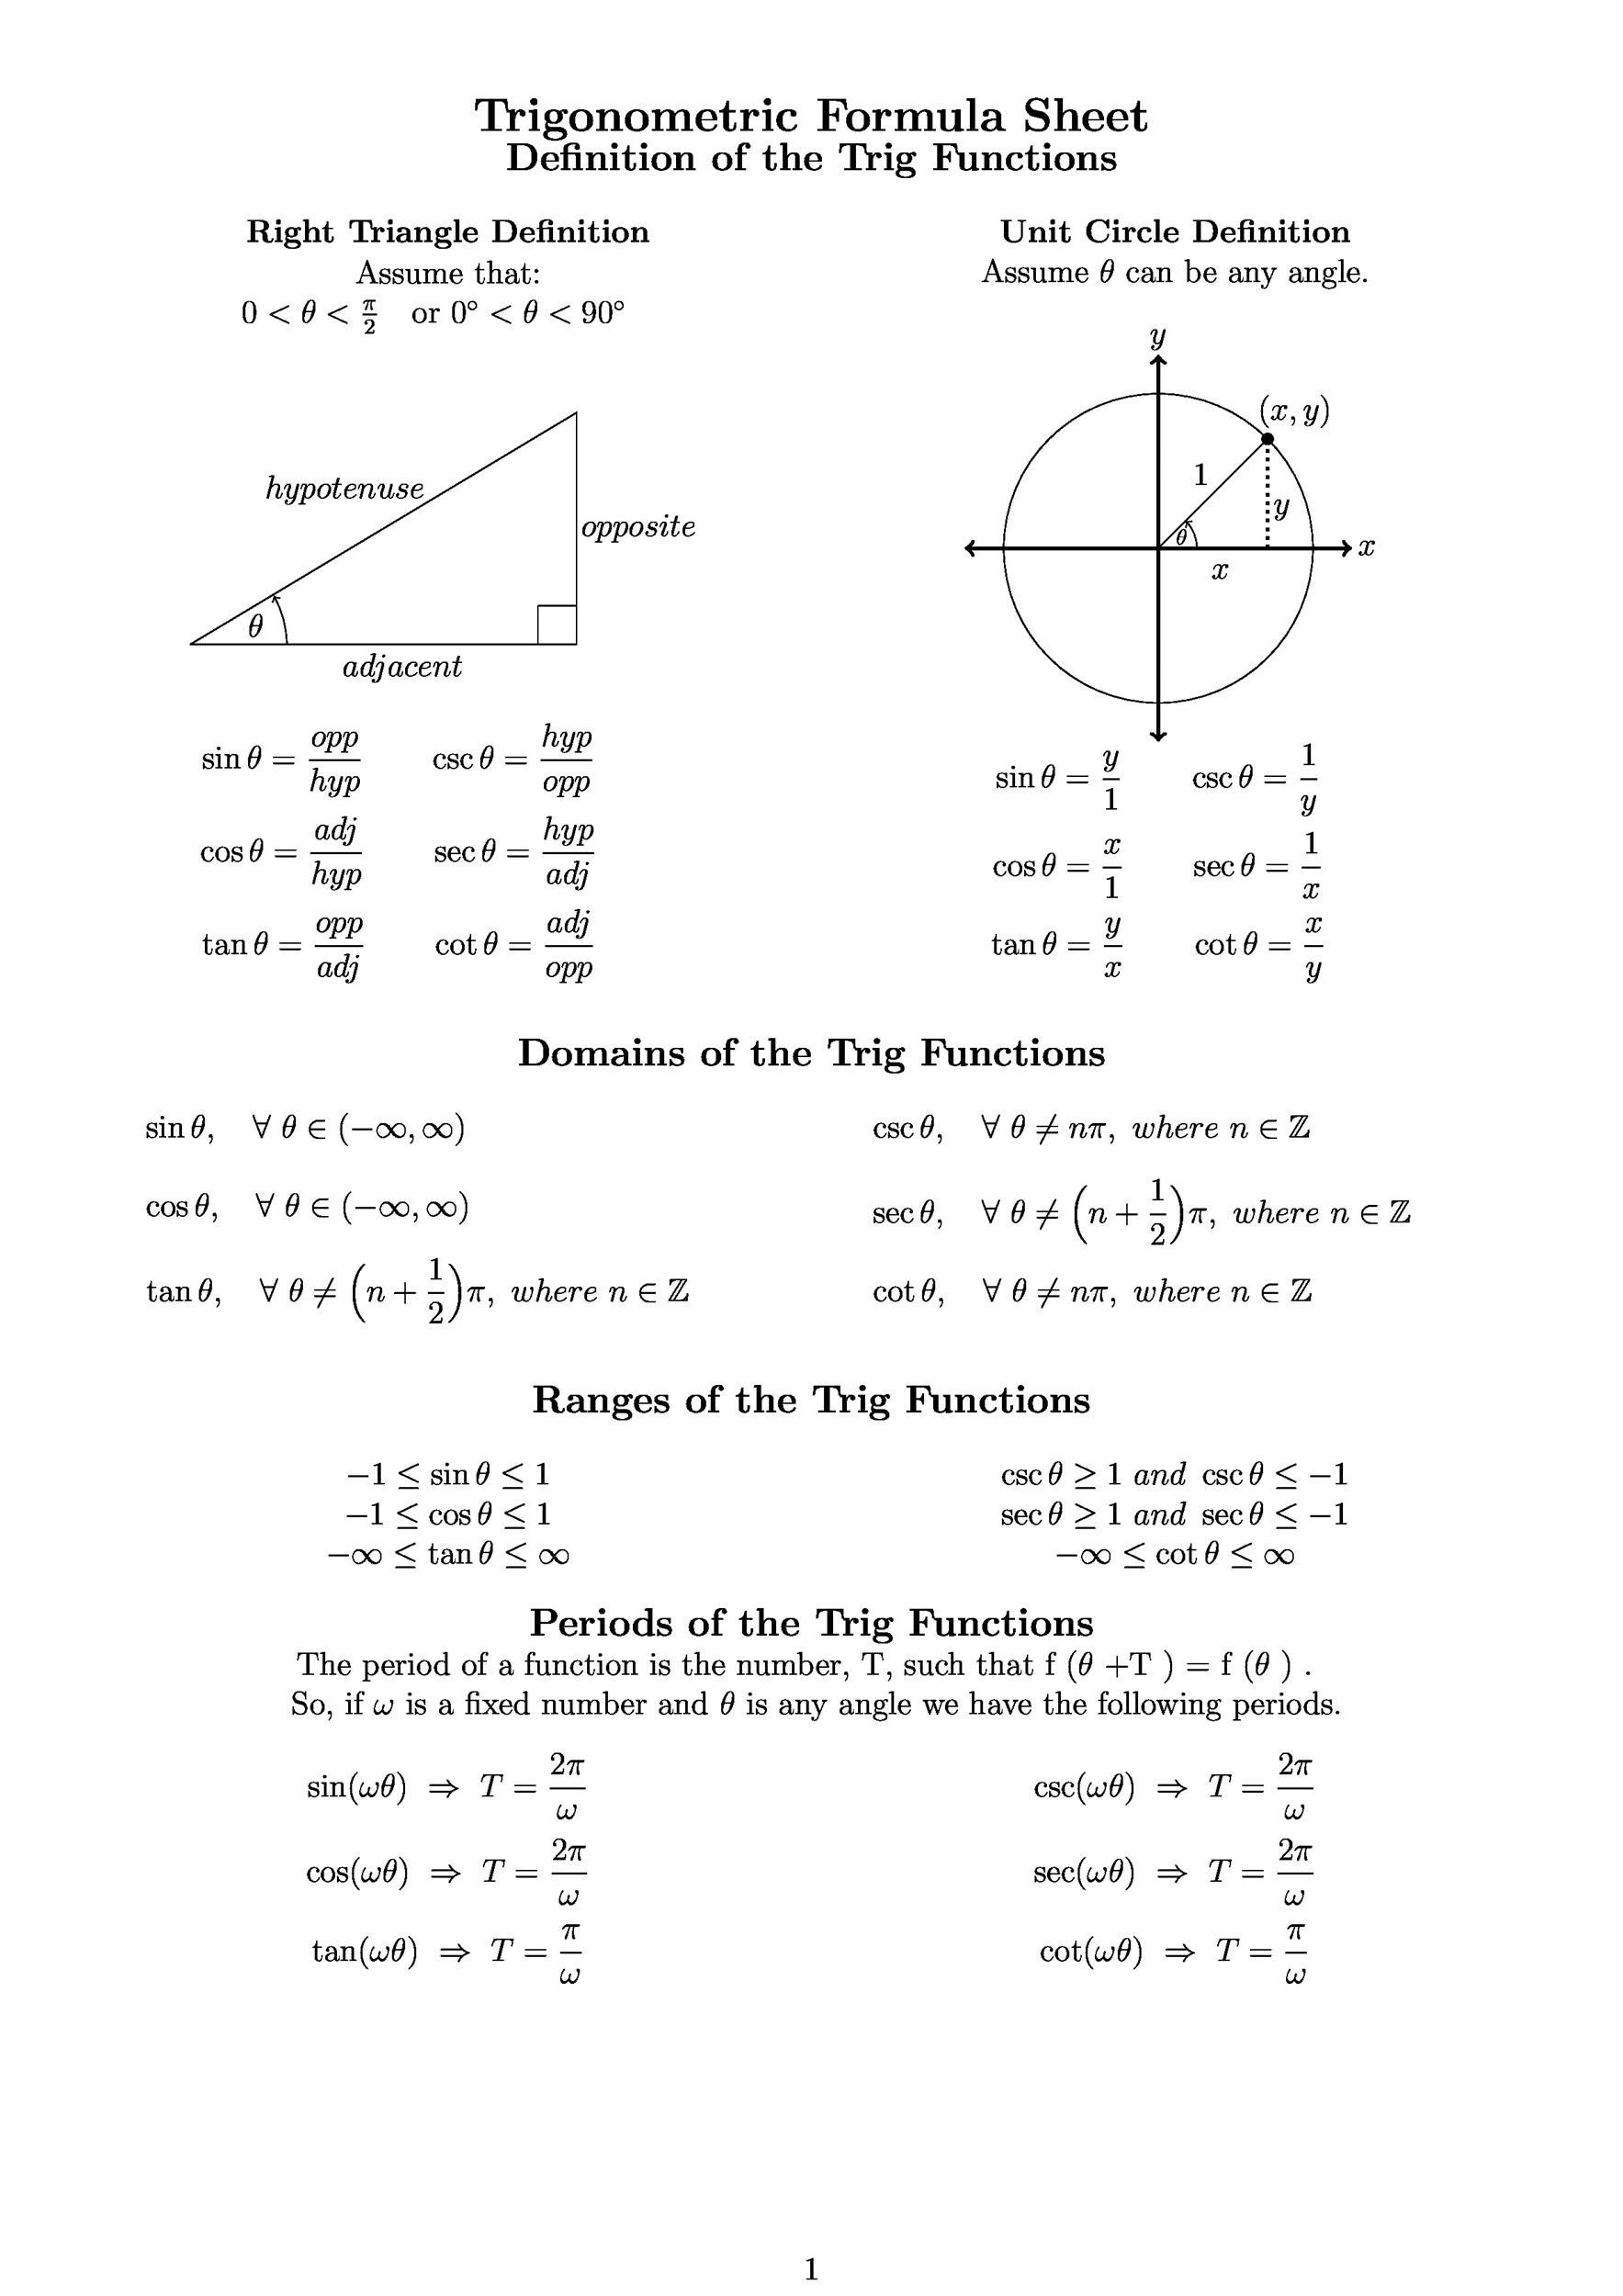 42 Printable Unit Circle Charts & Diagrams (Sin, Cos, Tan